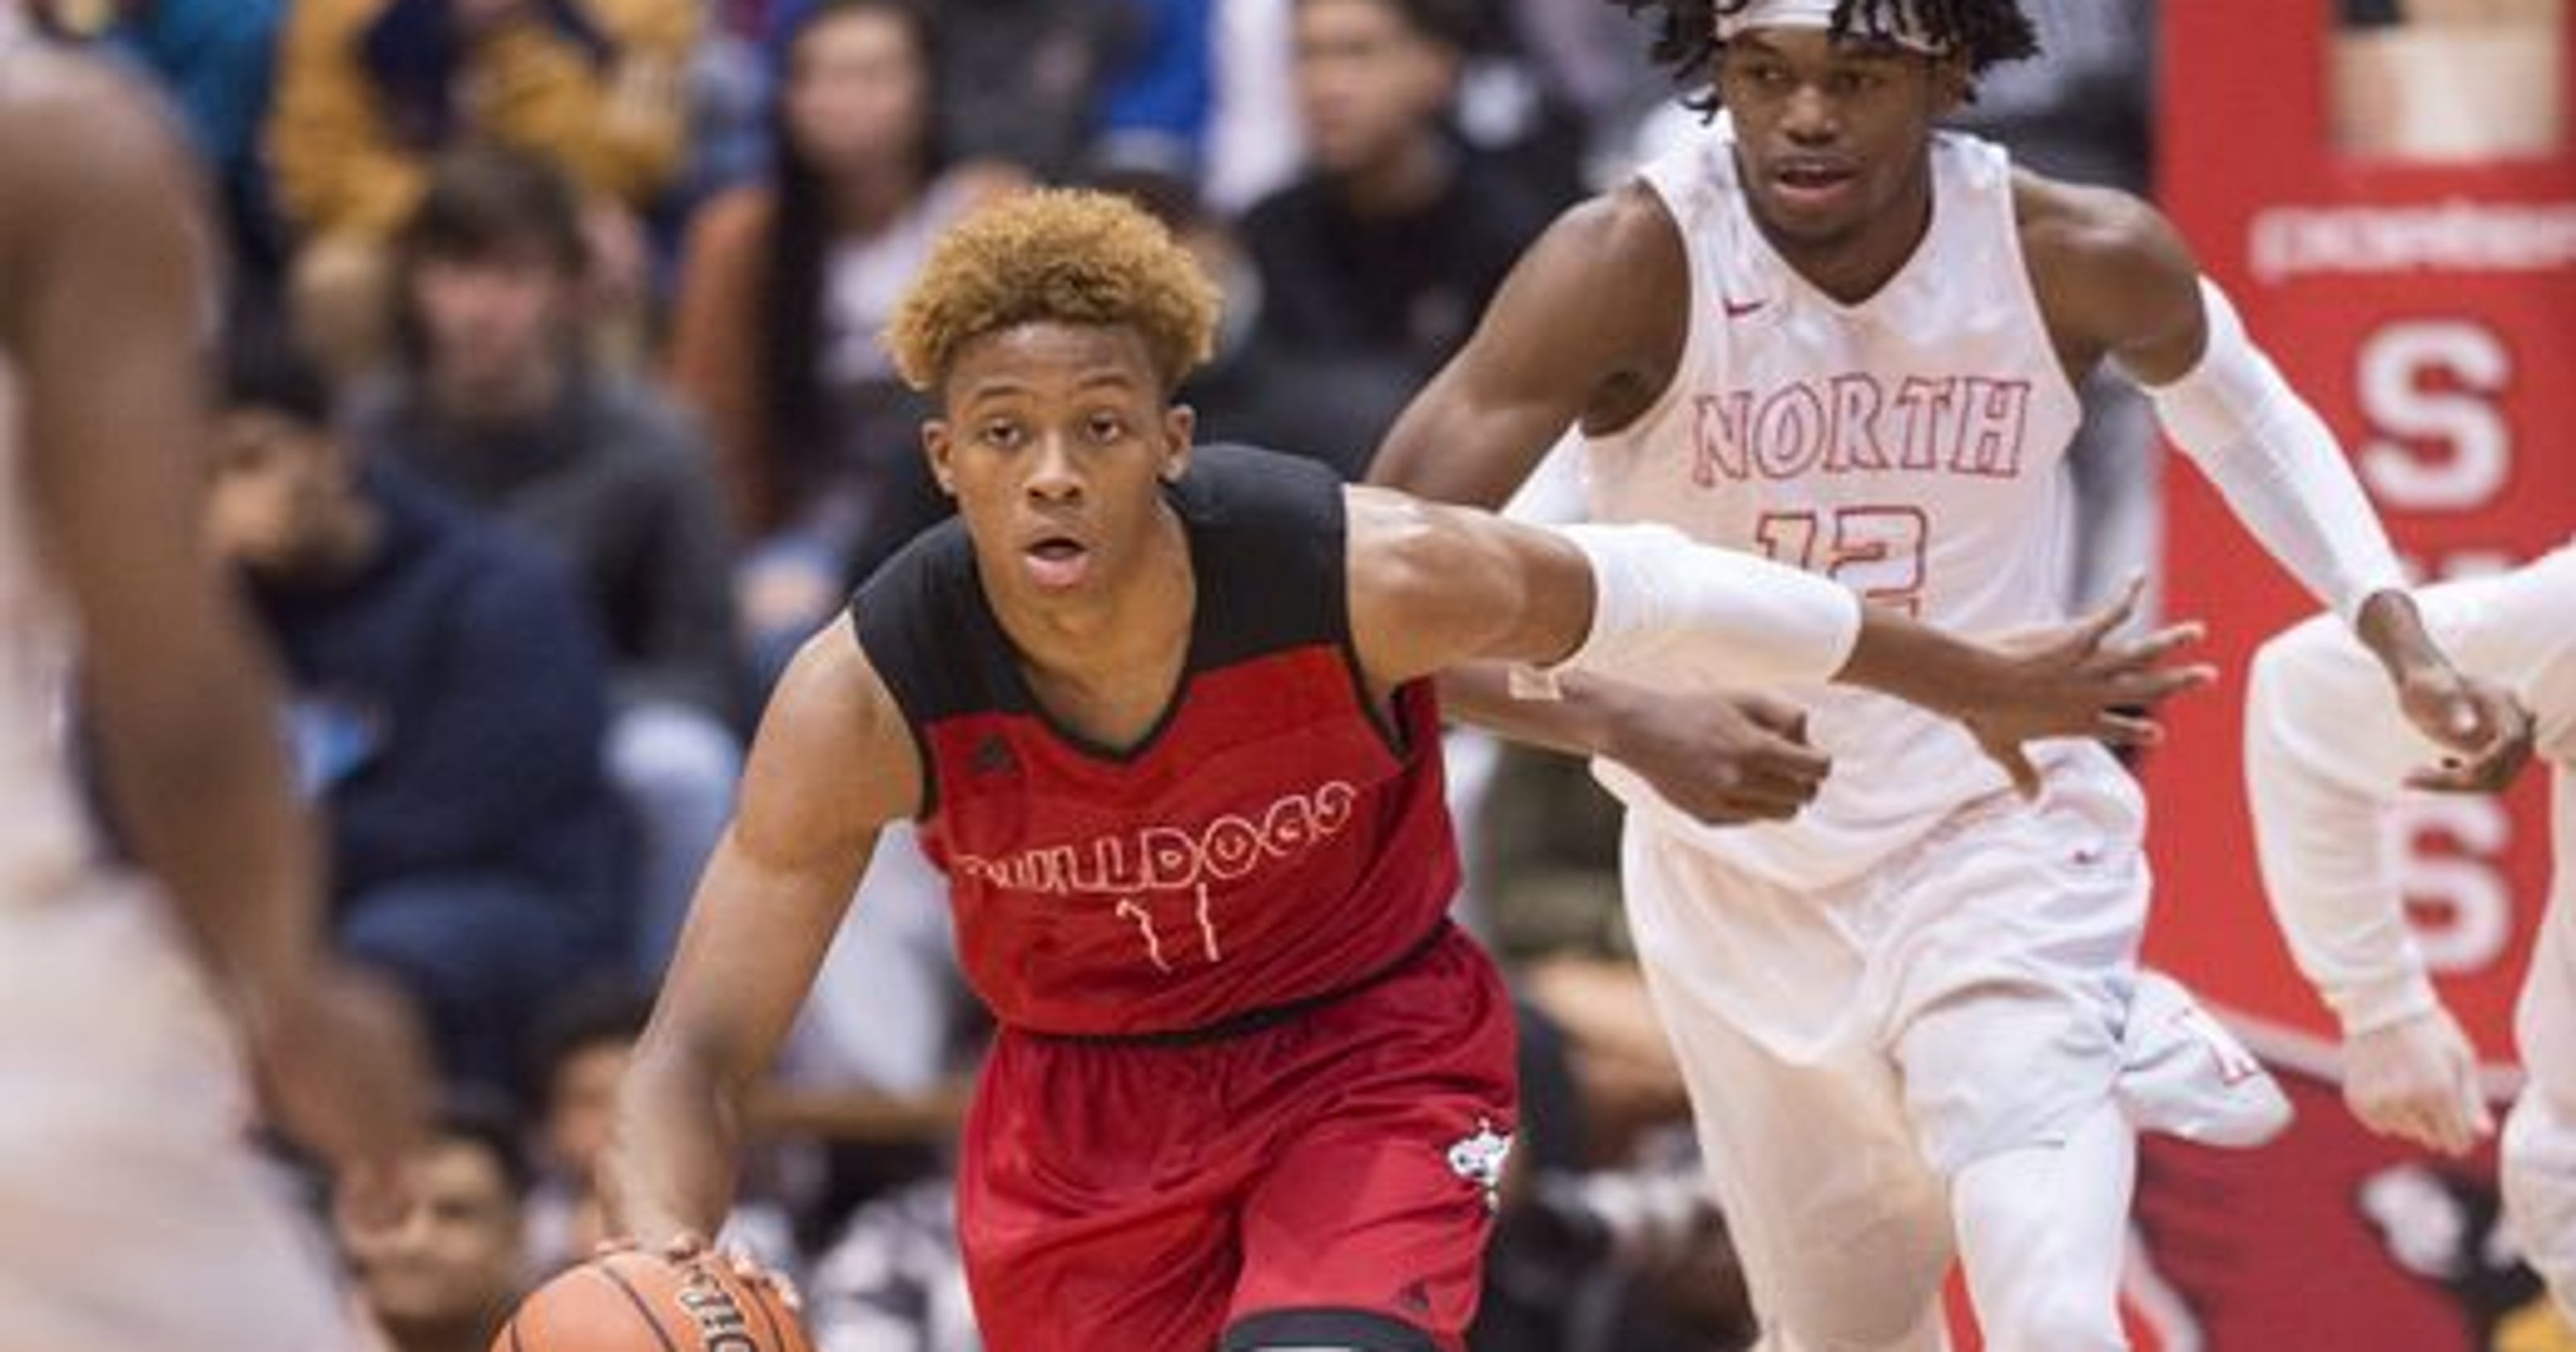 c4324f8d297 Romeo Langford  What does his recruiting ranking say about NBA future